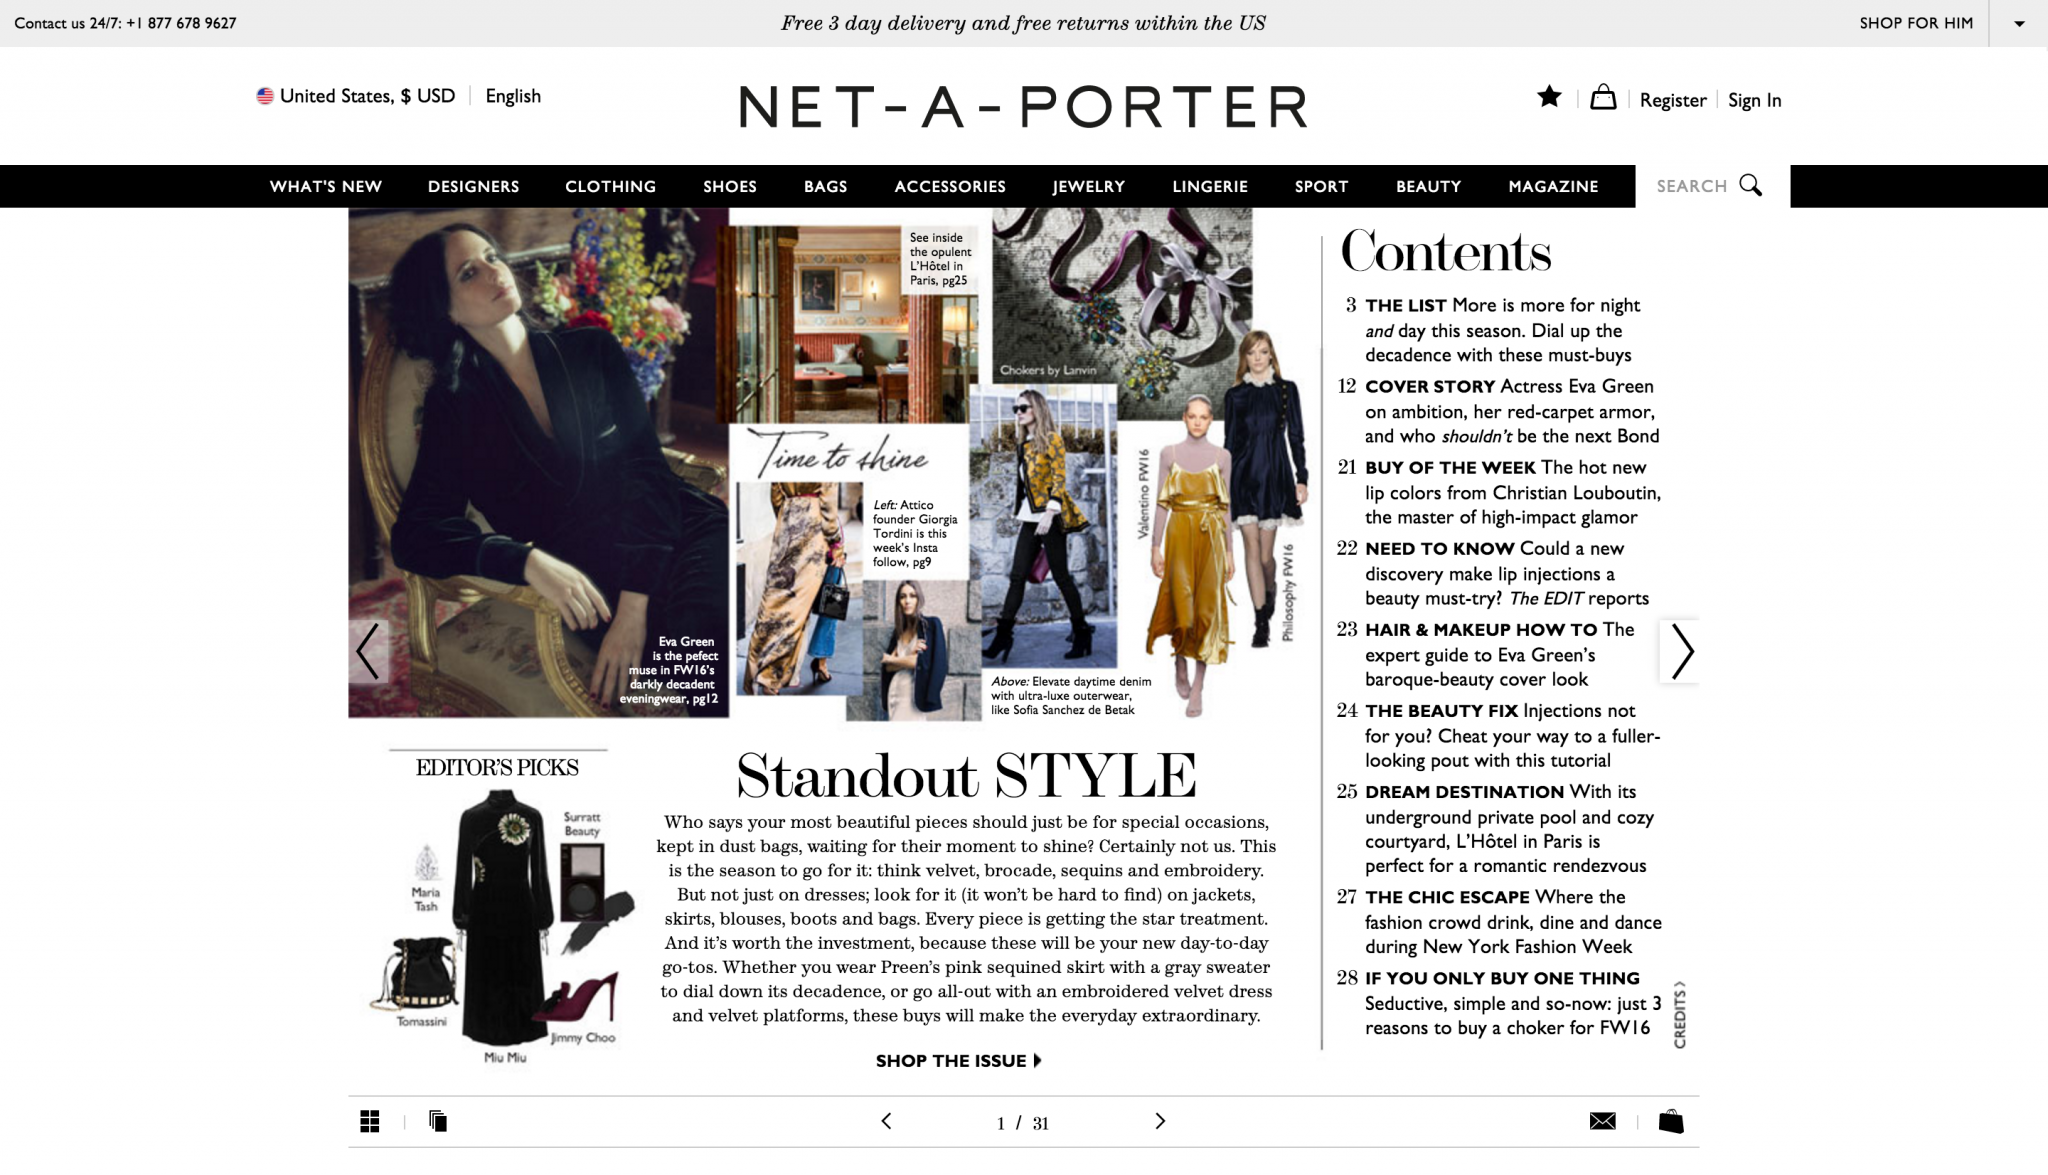 Source: Net-a-porter, The Edit September 2016